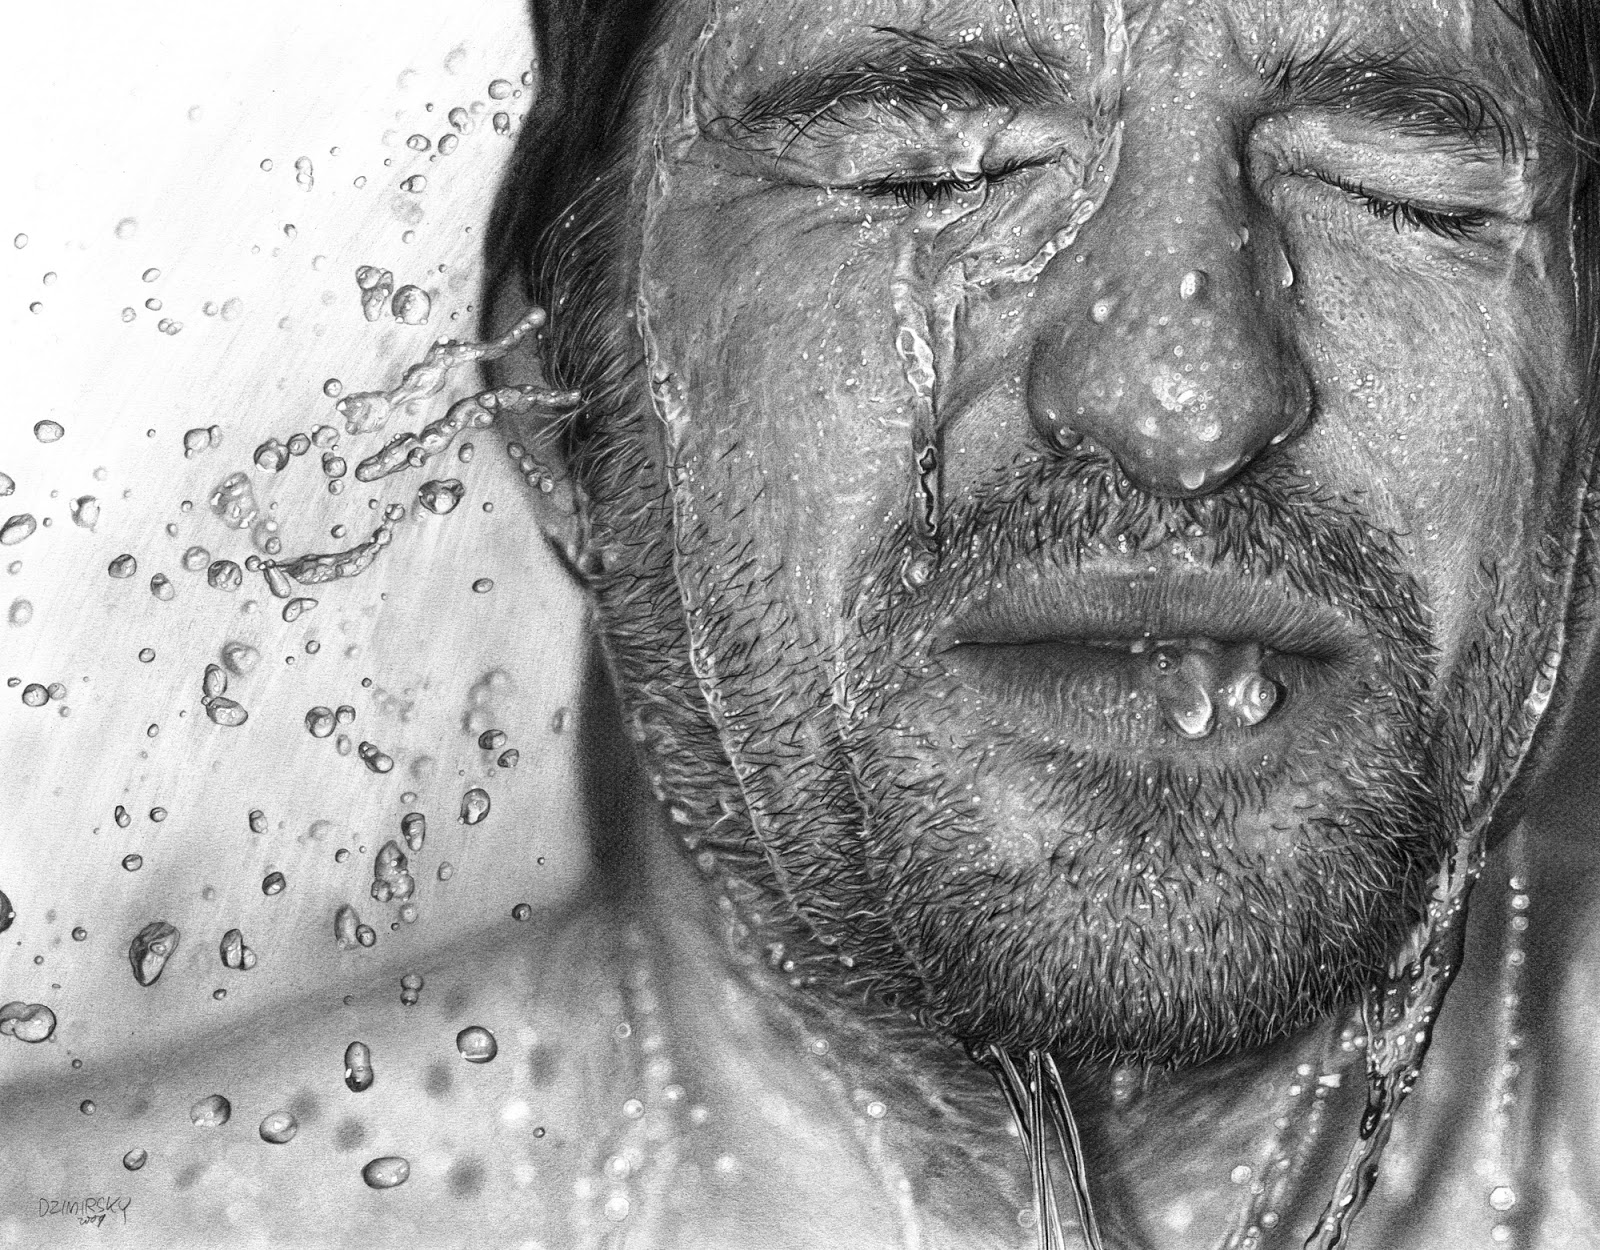 Drawn face vi 2009 pencil on paper 42 x 54 inches private collection mountain view ca usa by dirk dzimirsky courtesy artist